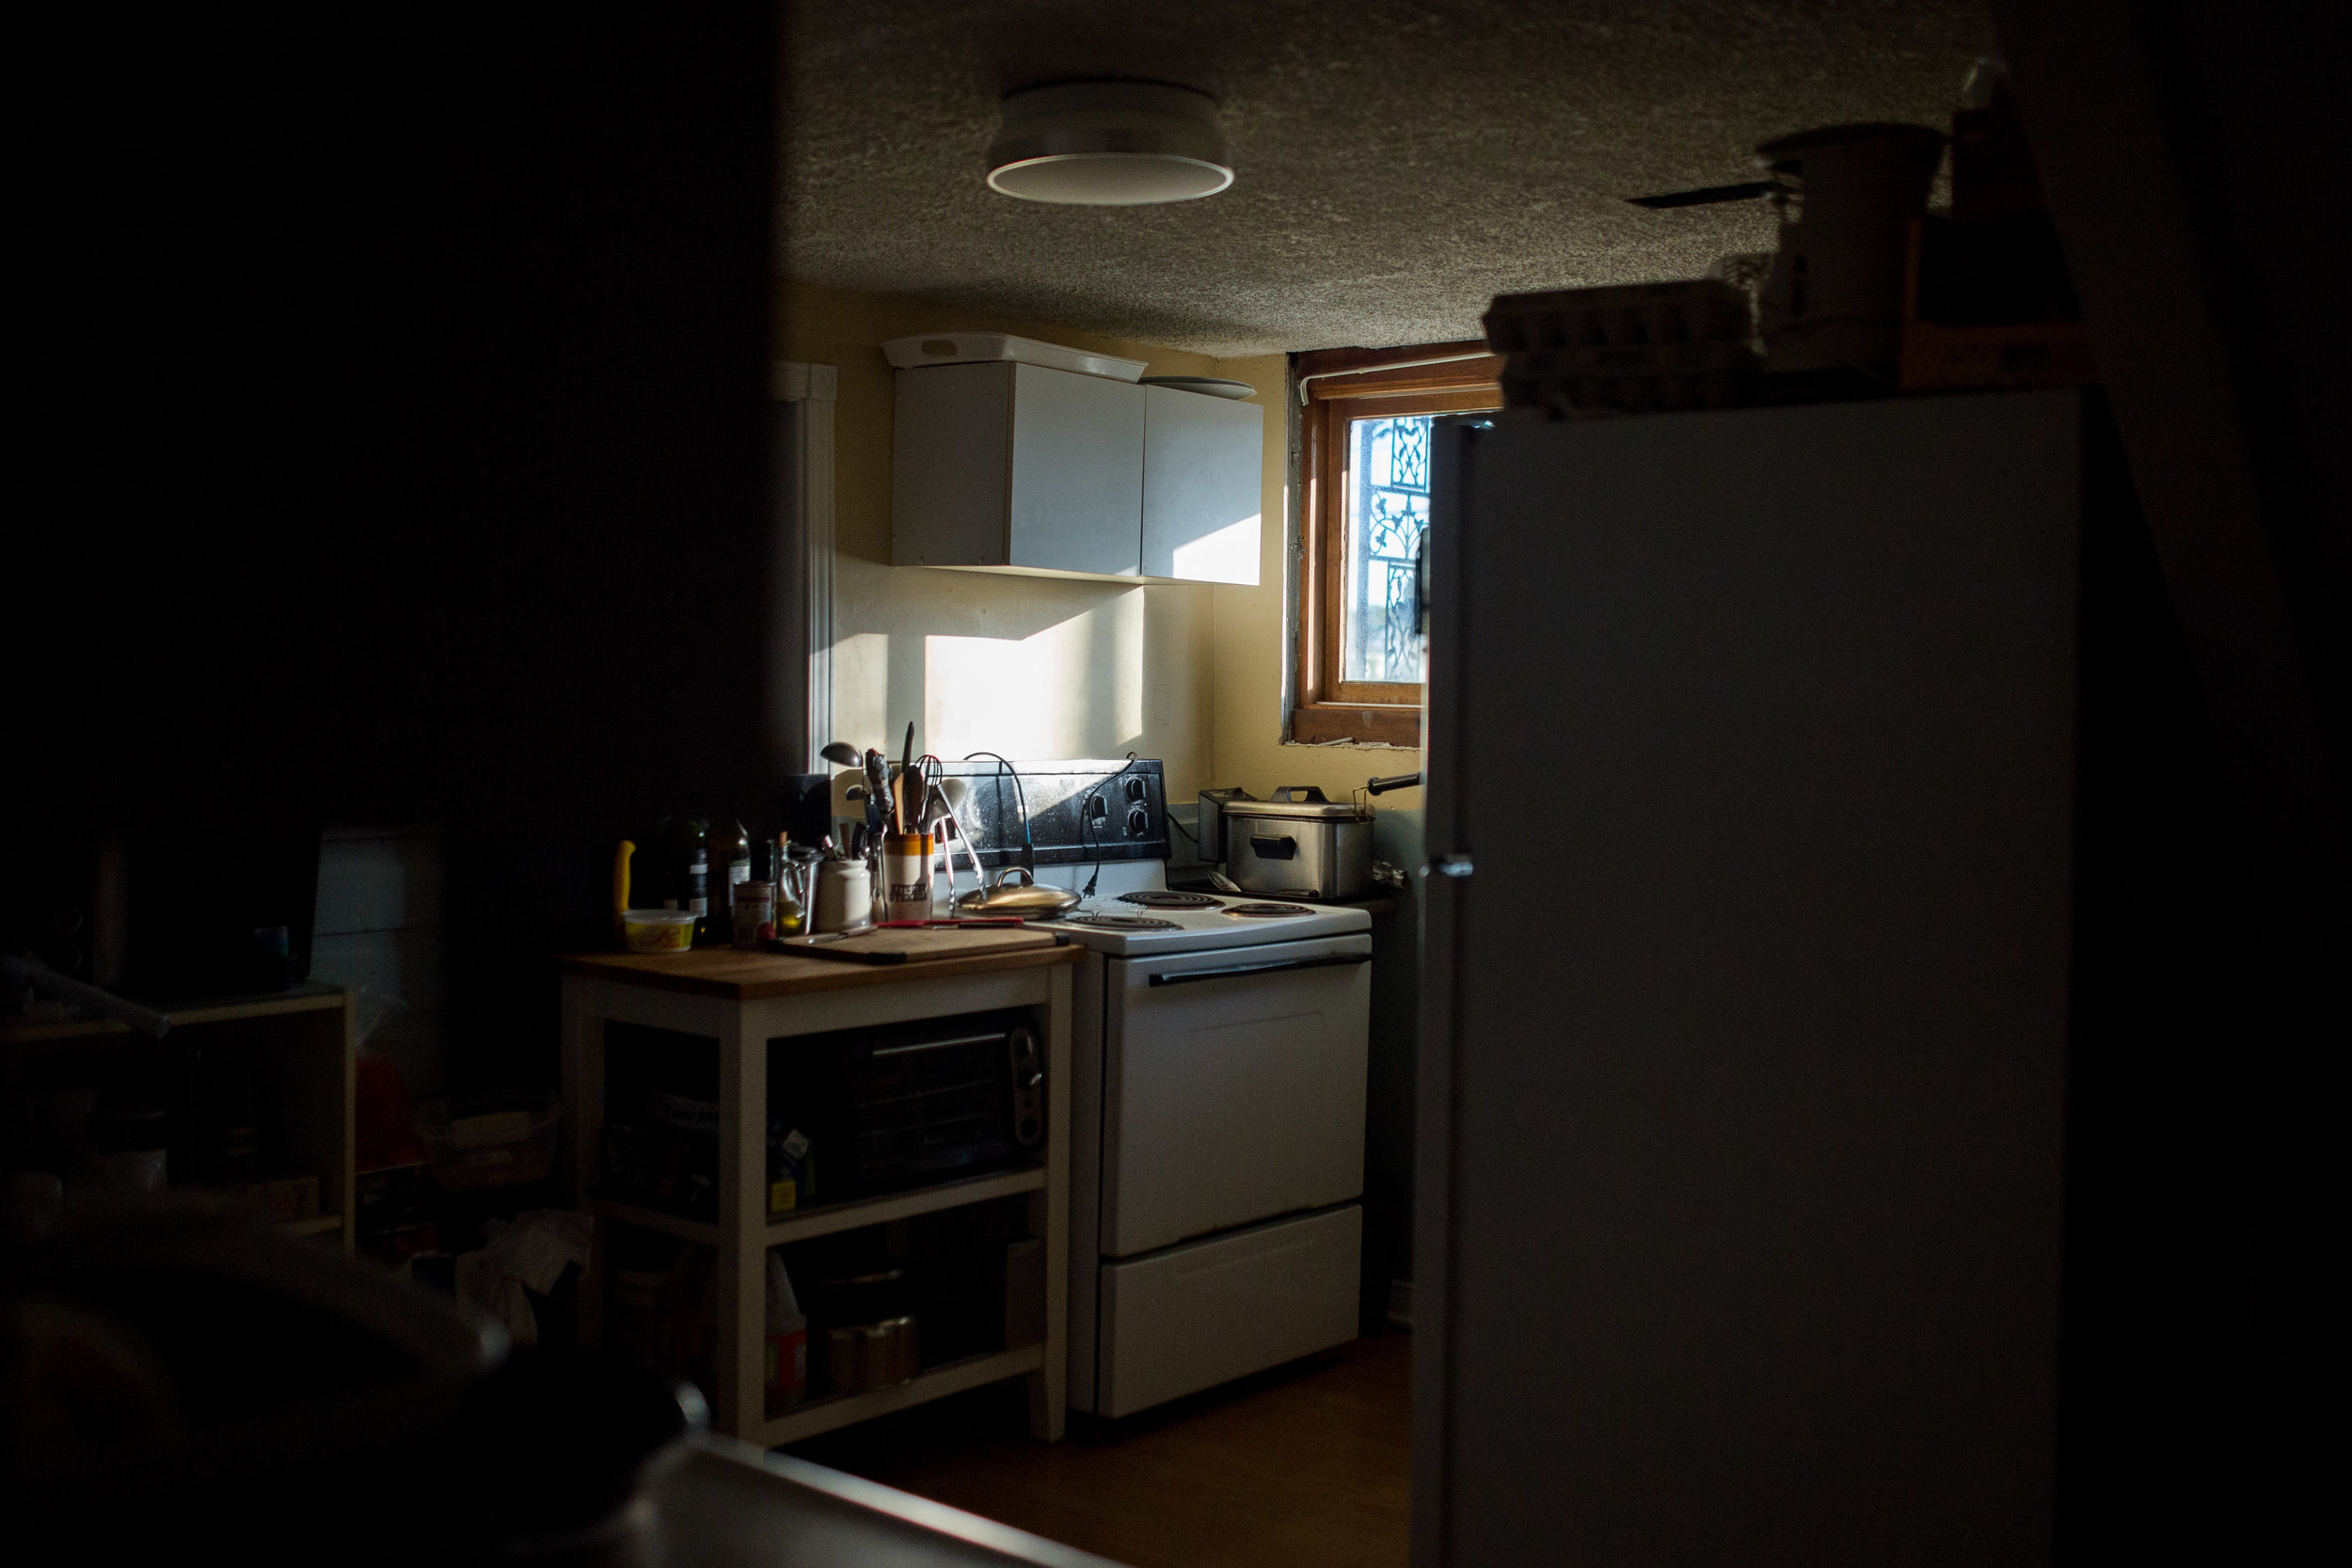 October 3 2017.   On one of my visits after New Zealand, I visited my father and stayed overnight for the first time in years. I felt lucky to witness the morning light that filled my father's kitchen, followed by a classic dad breakfast. My father was a chef for years and always comforts my visits with food.